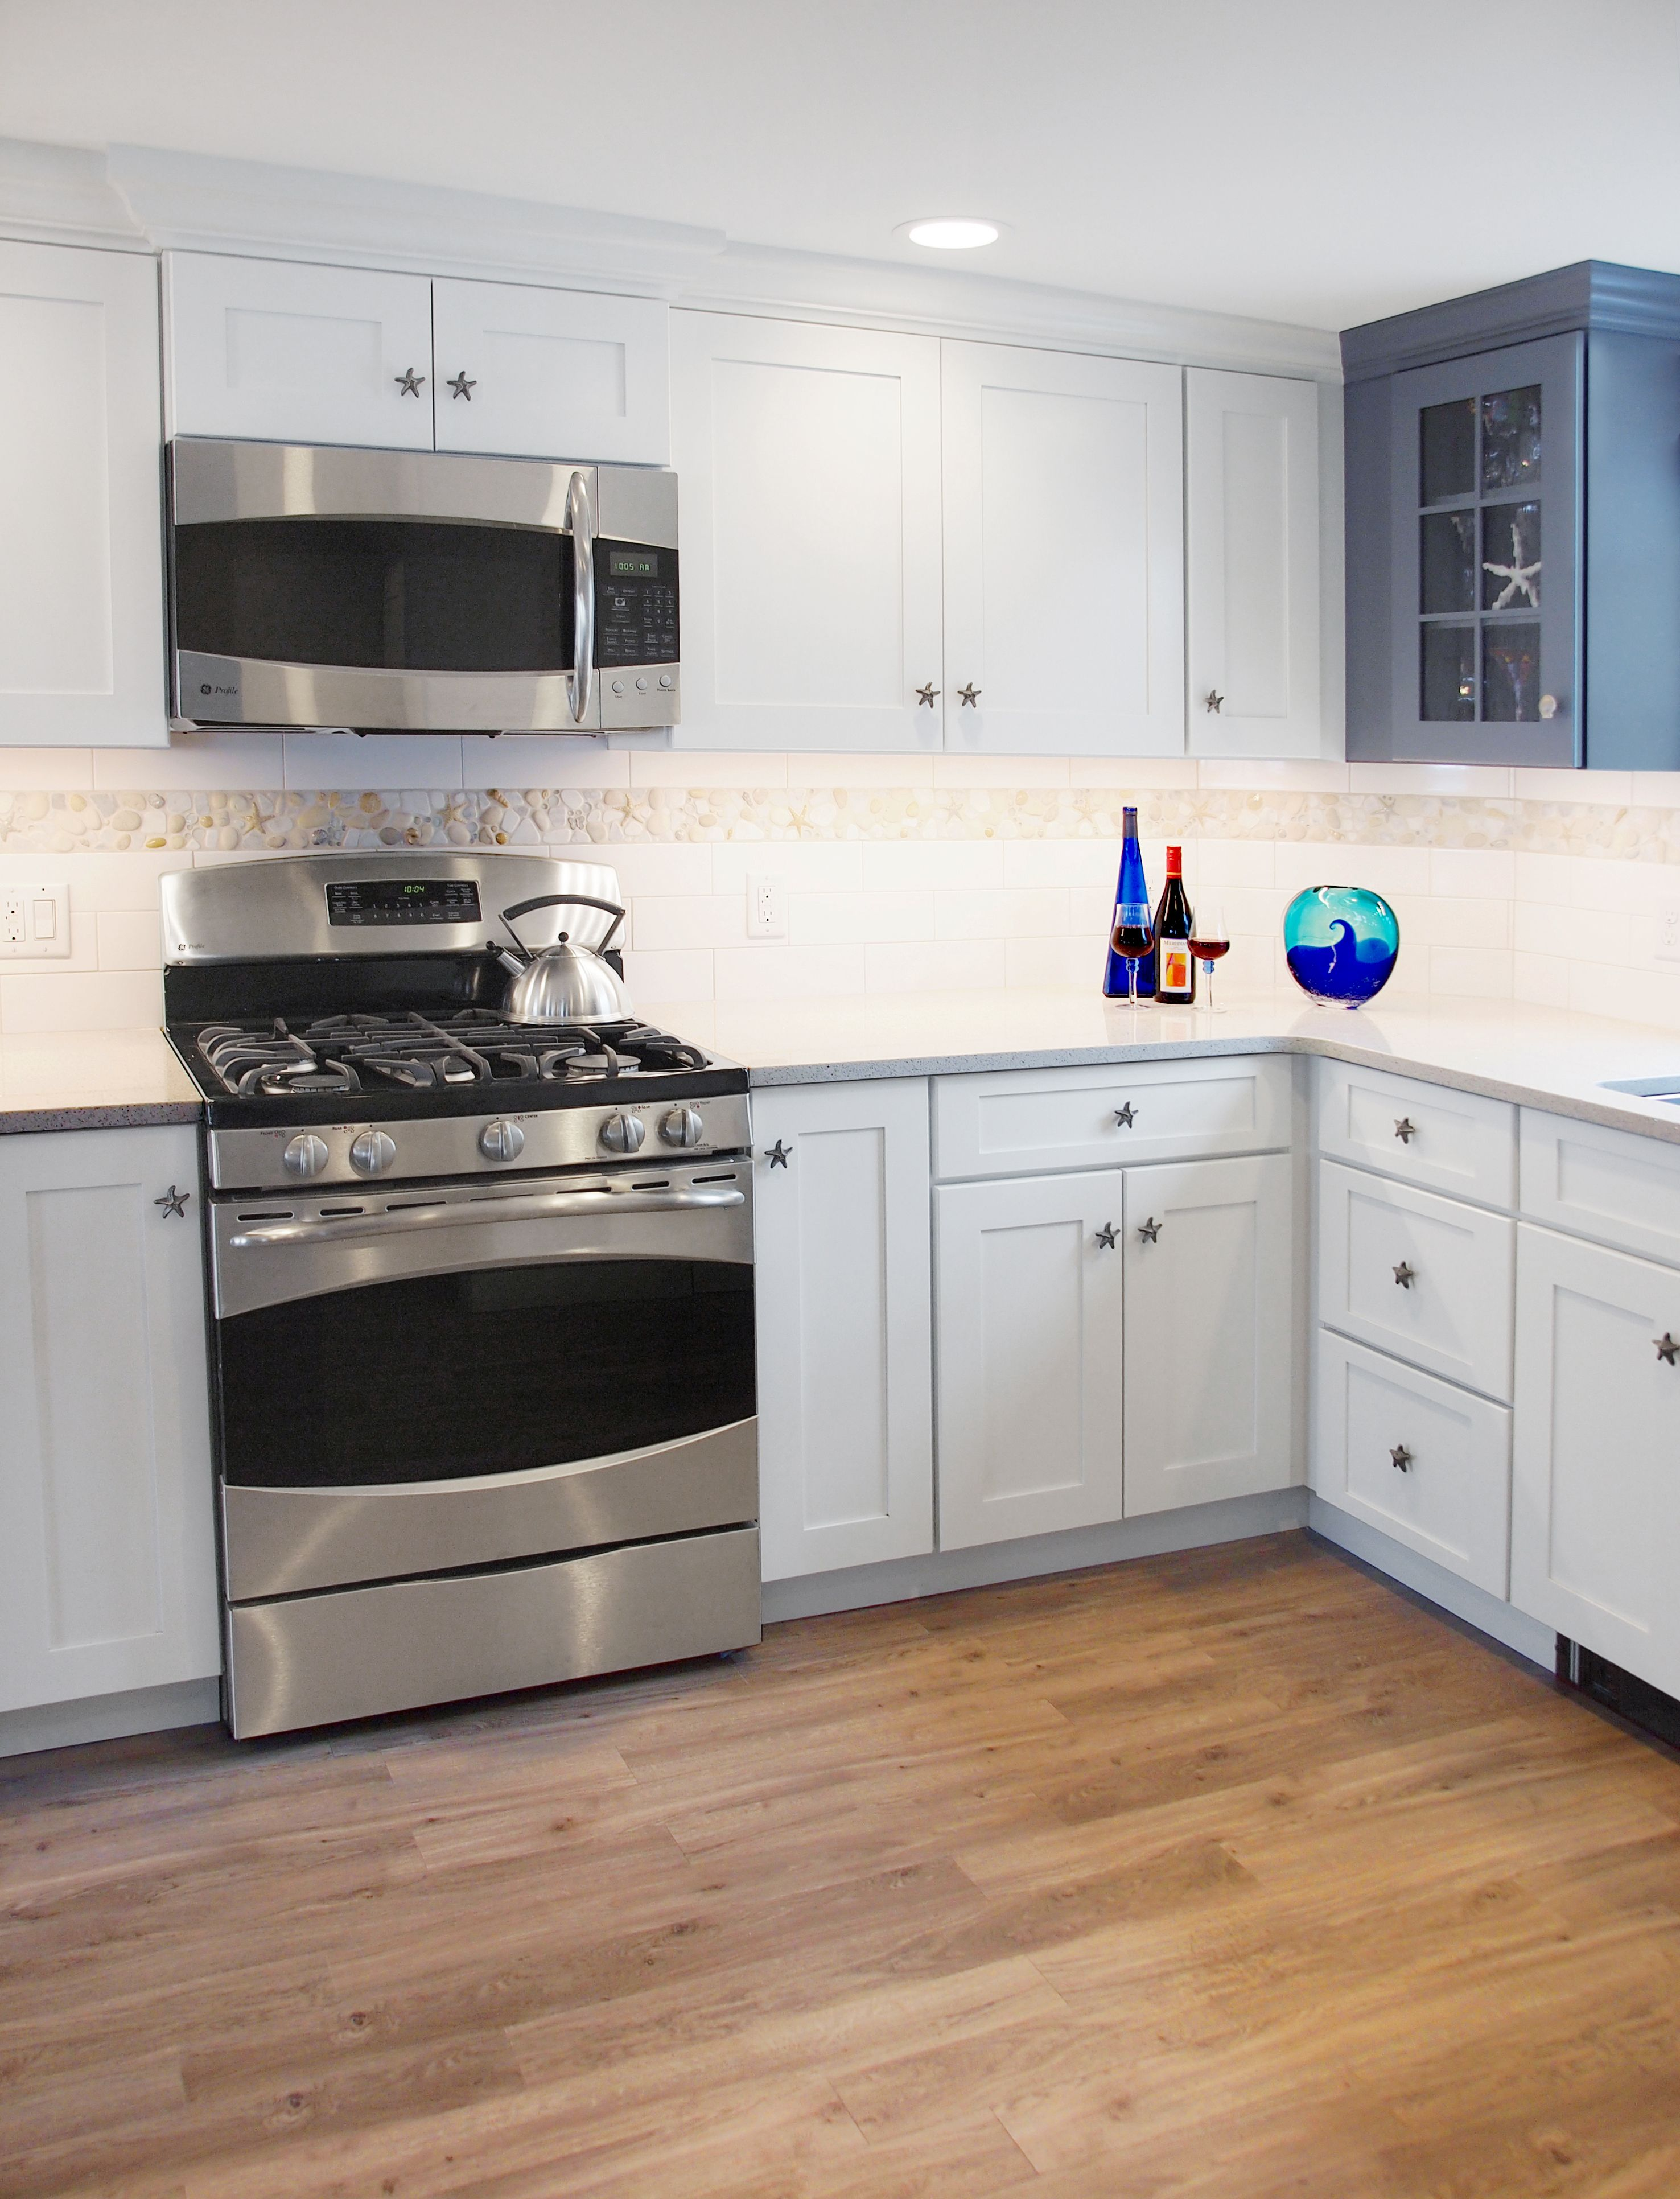 Beach house kitchen remodel by Renovisions with blue and white